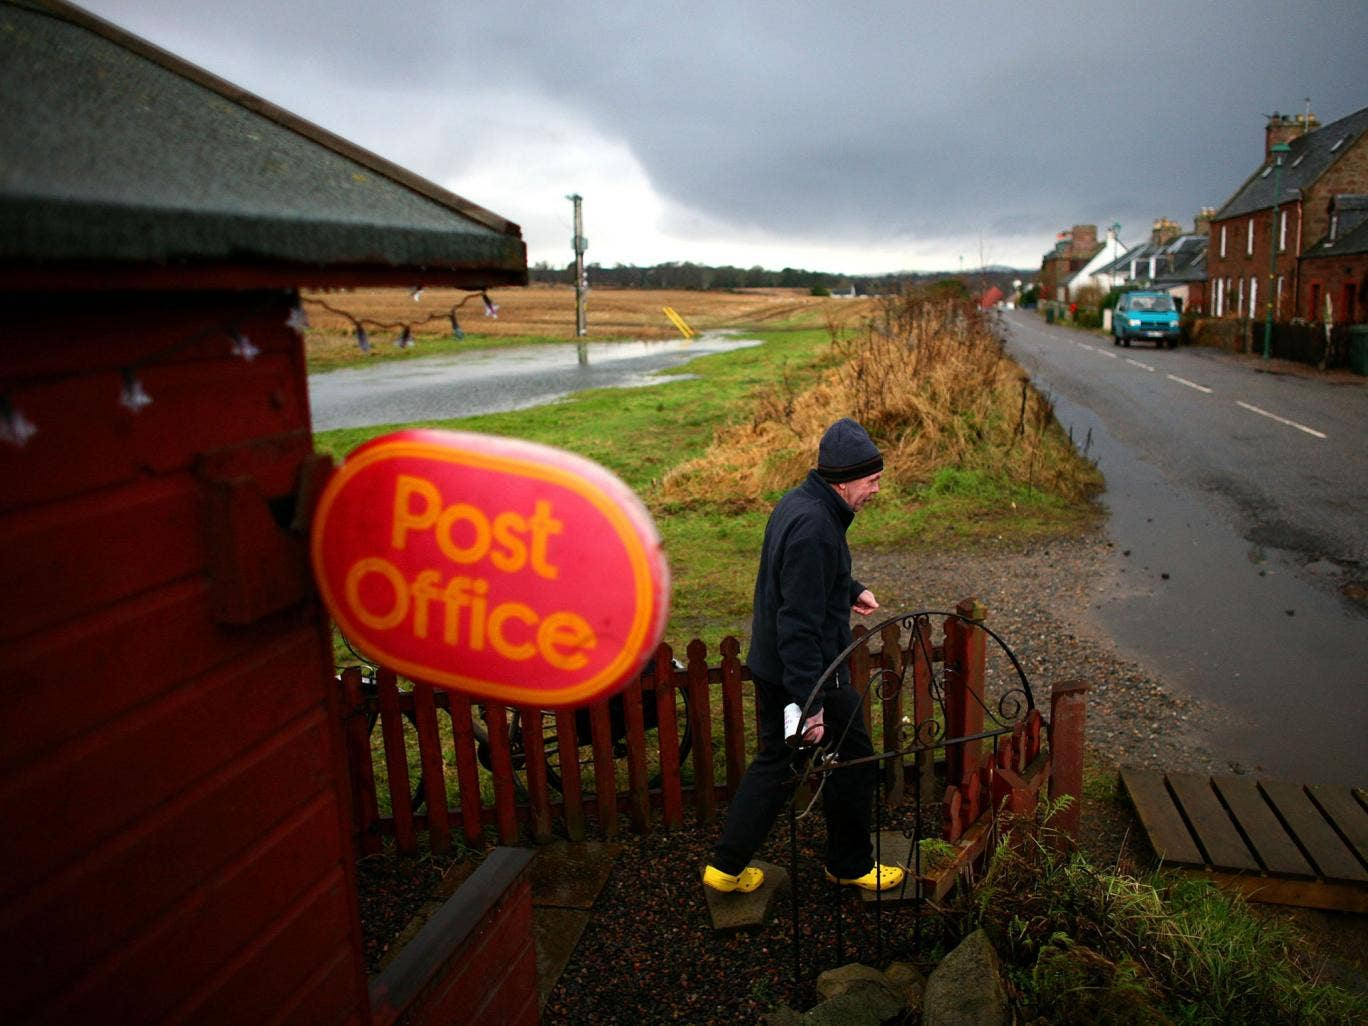 Branching out: But can the Post Office steal the high street's thunder?